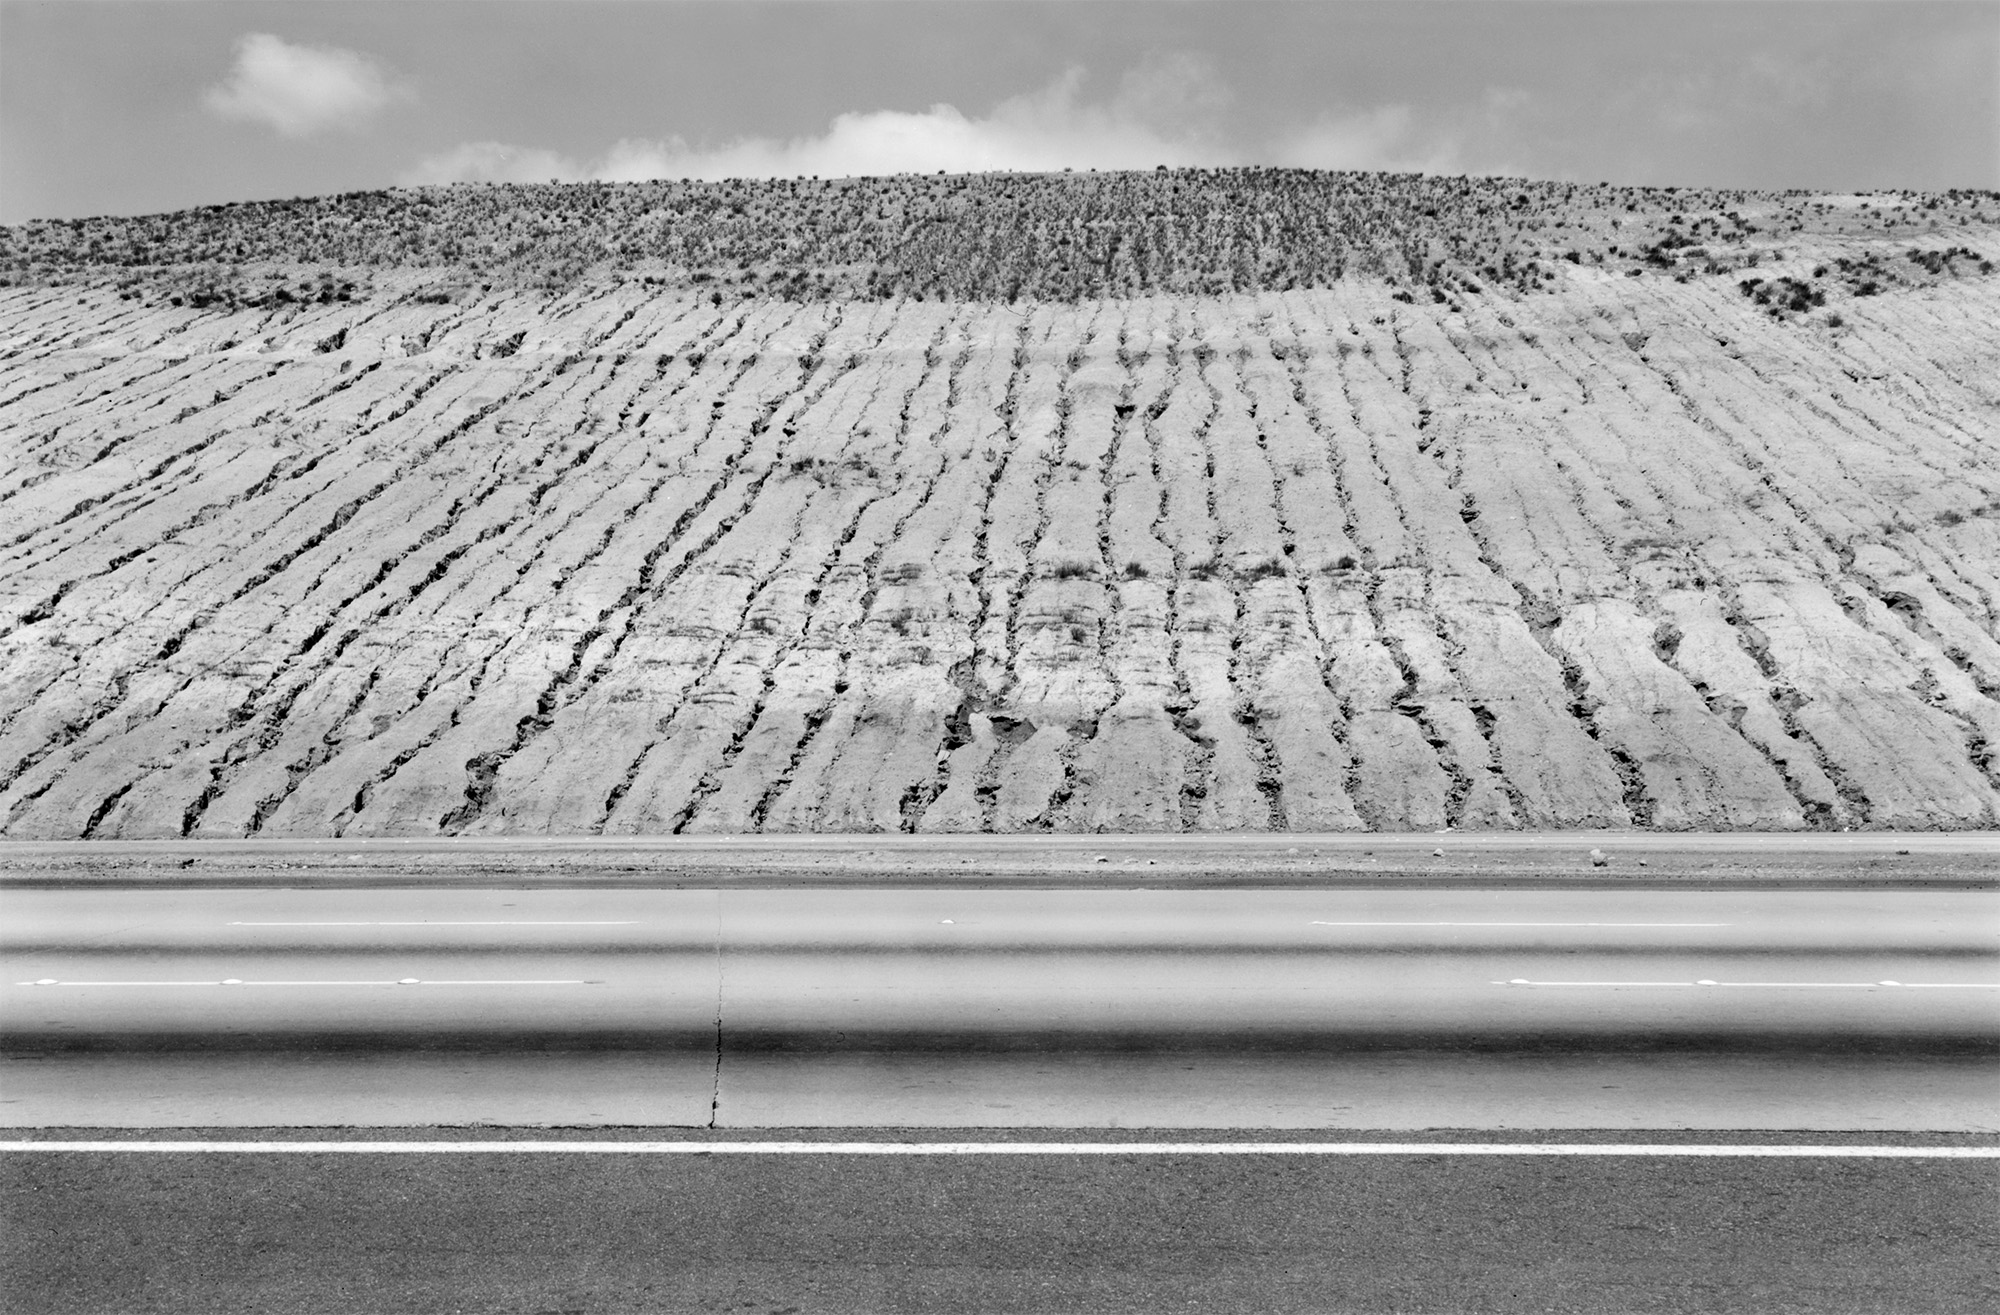 Interstate 5, California, USA 1975